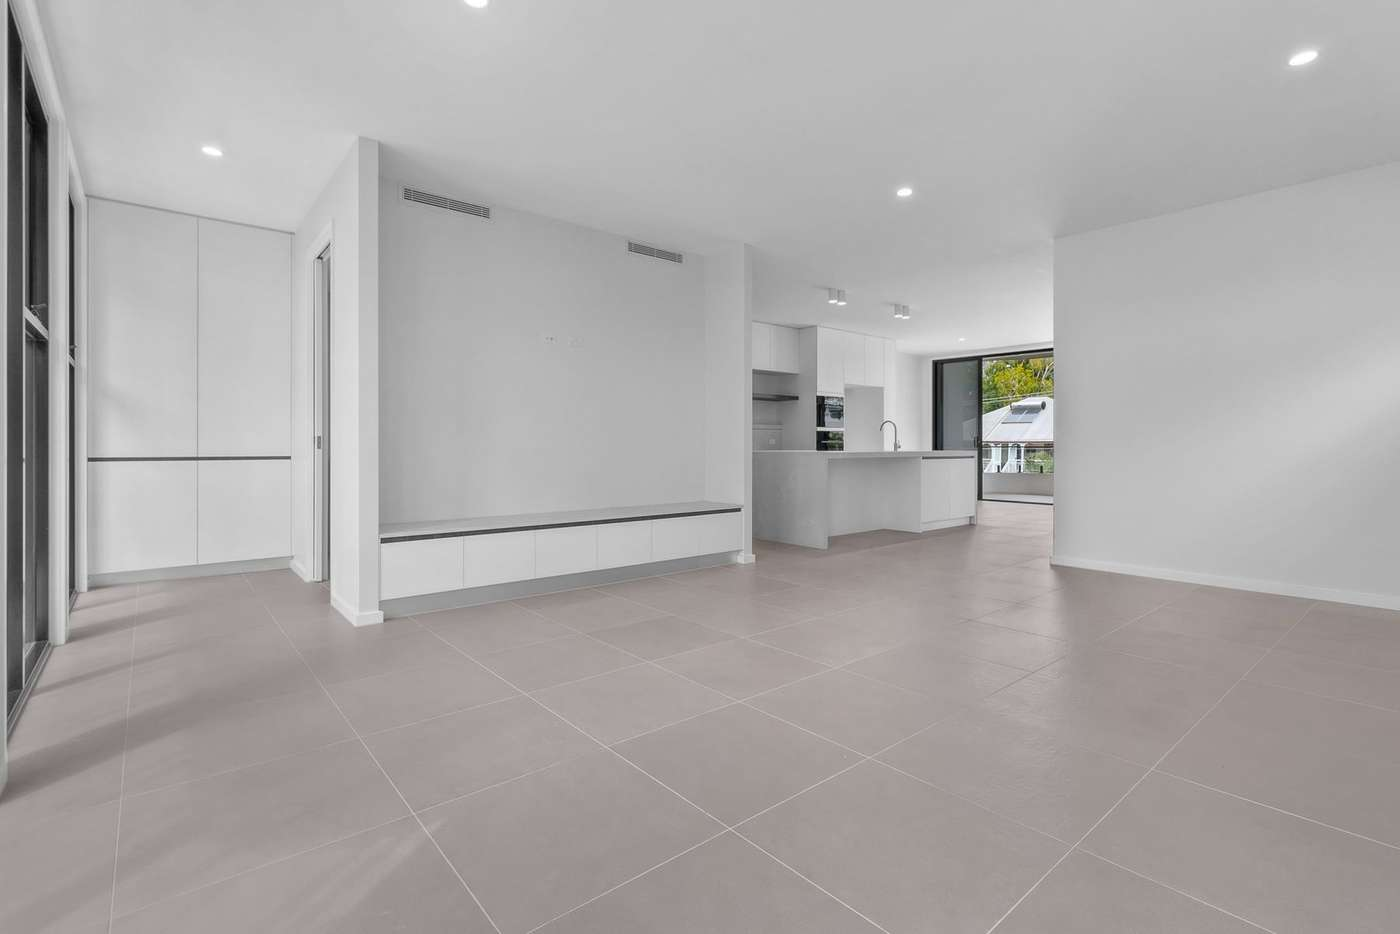 Sixth view of Homely townhouse listing, 6/39 Byron Street, Bulimba QLD 4171